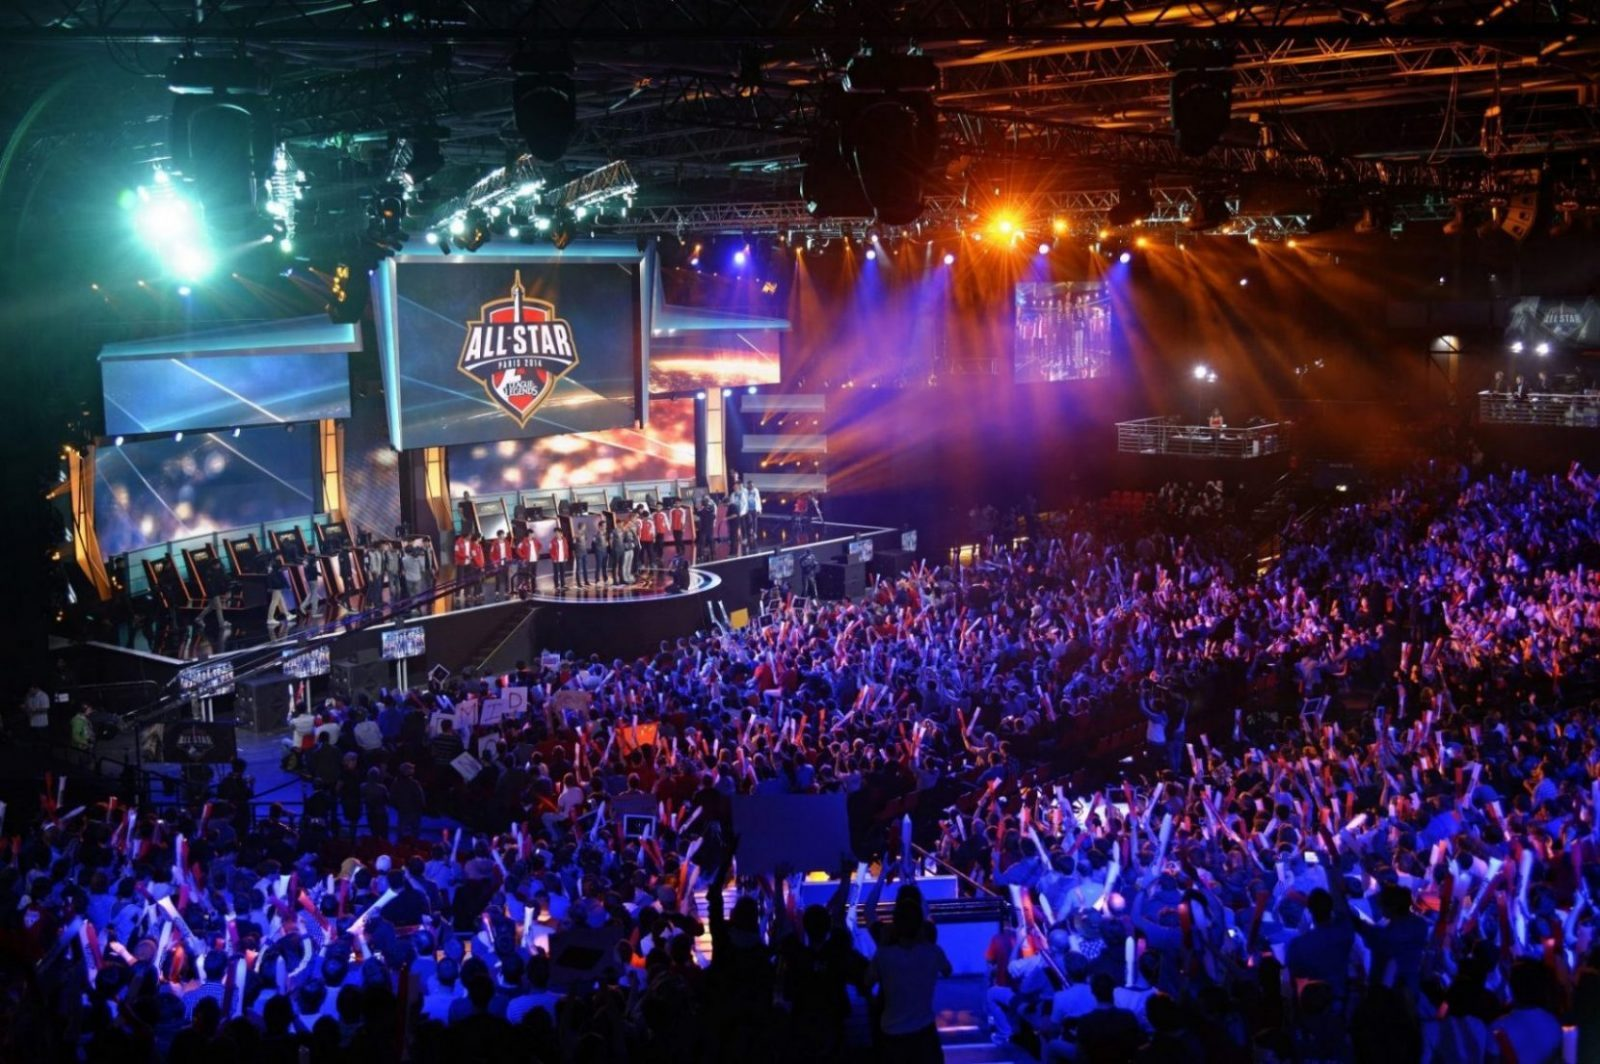 "Visitors cheer for international teams during the tournament of the computer game ""League of Legends"" on May 8, 2014 in Paris. Launched late in 2009 by American video game publisher Riot Games, ""League of Legends"" is a game in which teams of five players compete in a virtual arena, killing each other using different powers and equipments in the goal to capture the enemy base. According to Riot Games, more than 67 million people play each month, with peaks of more than 7.5 million concurrent players at peak hours. The game will last four days starting today. AFP PHOTO / LIONEL BONAVENTURE        (Photo credit should read LIONEL BONAVENTURE/AFP/Getty Images)"